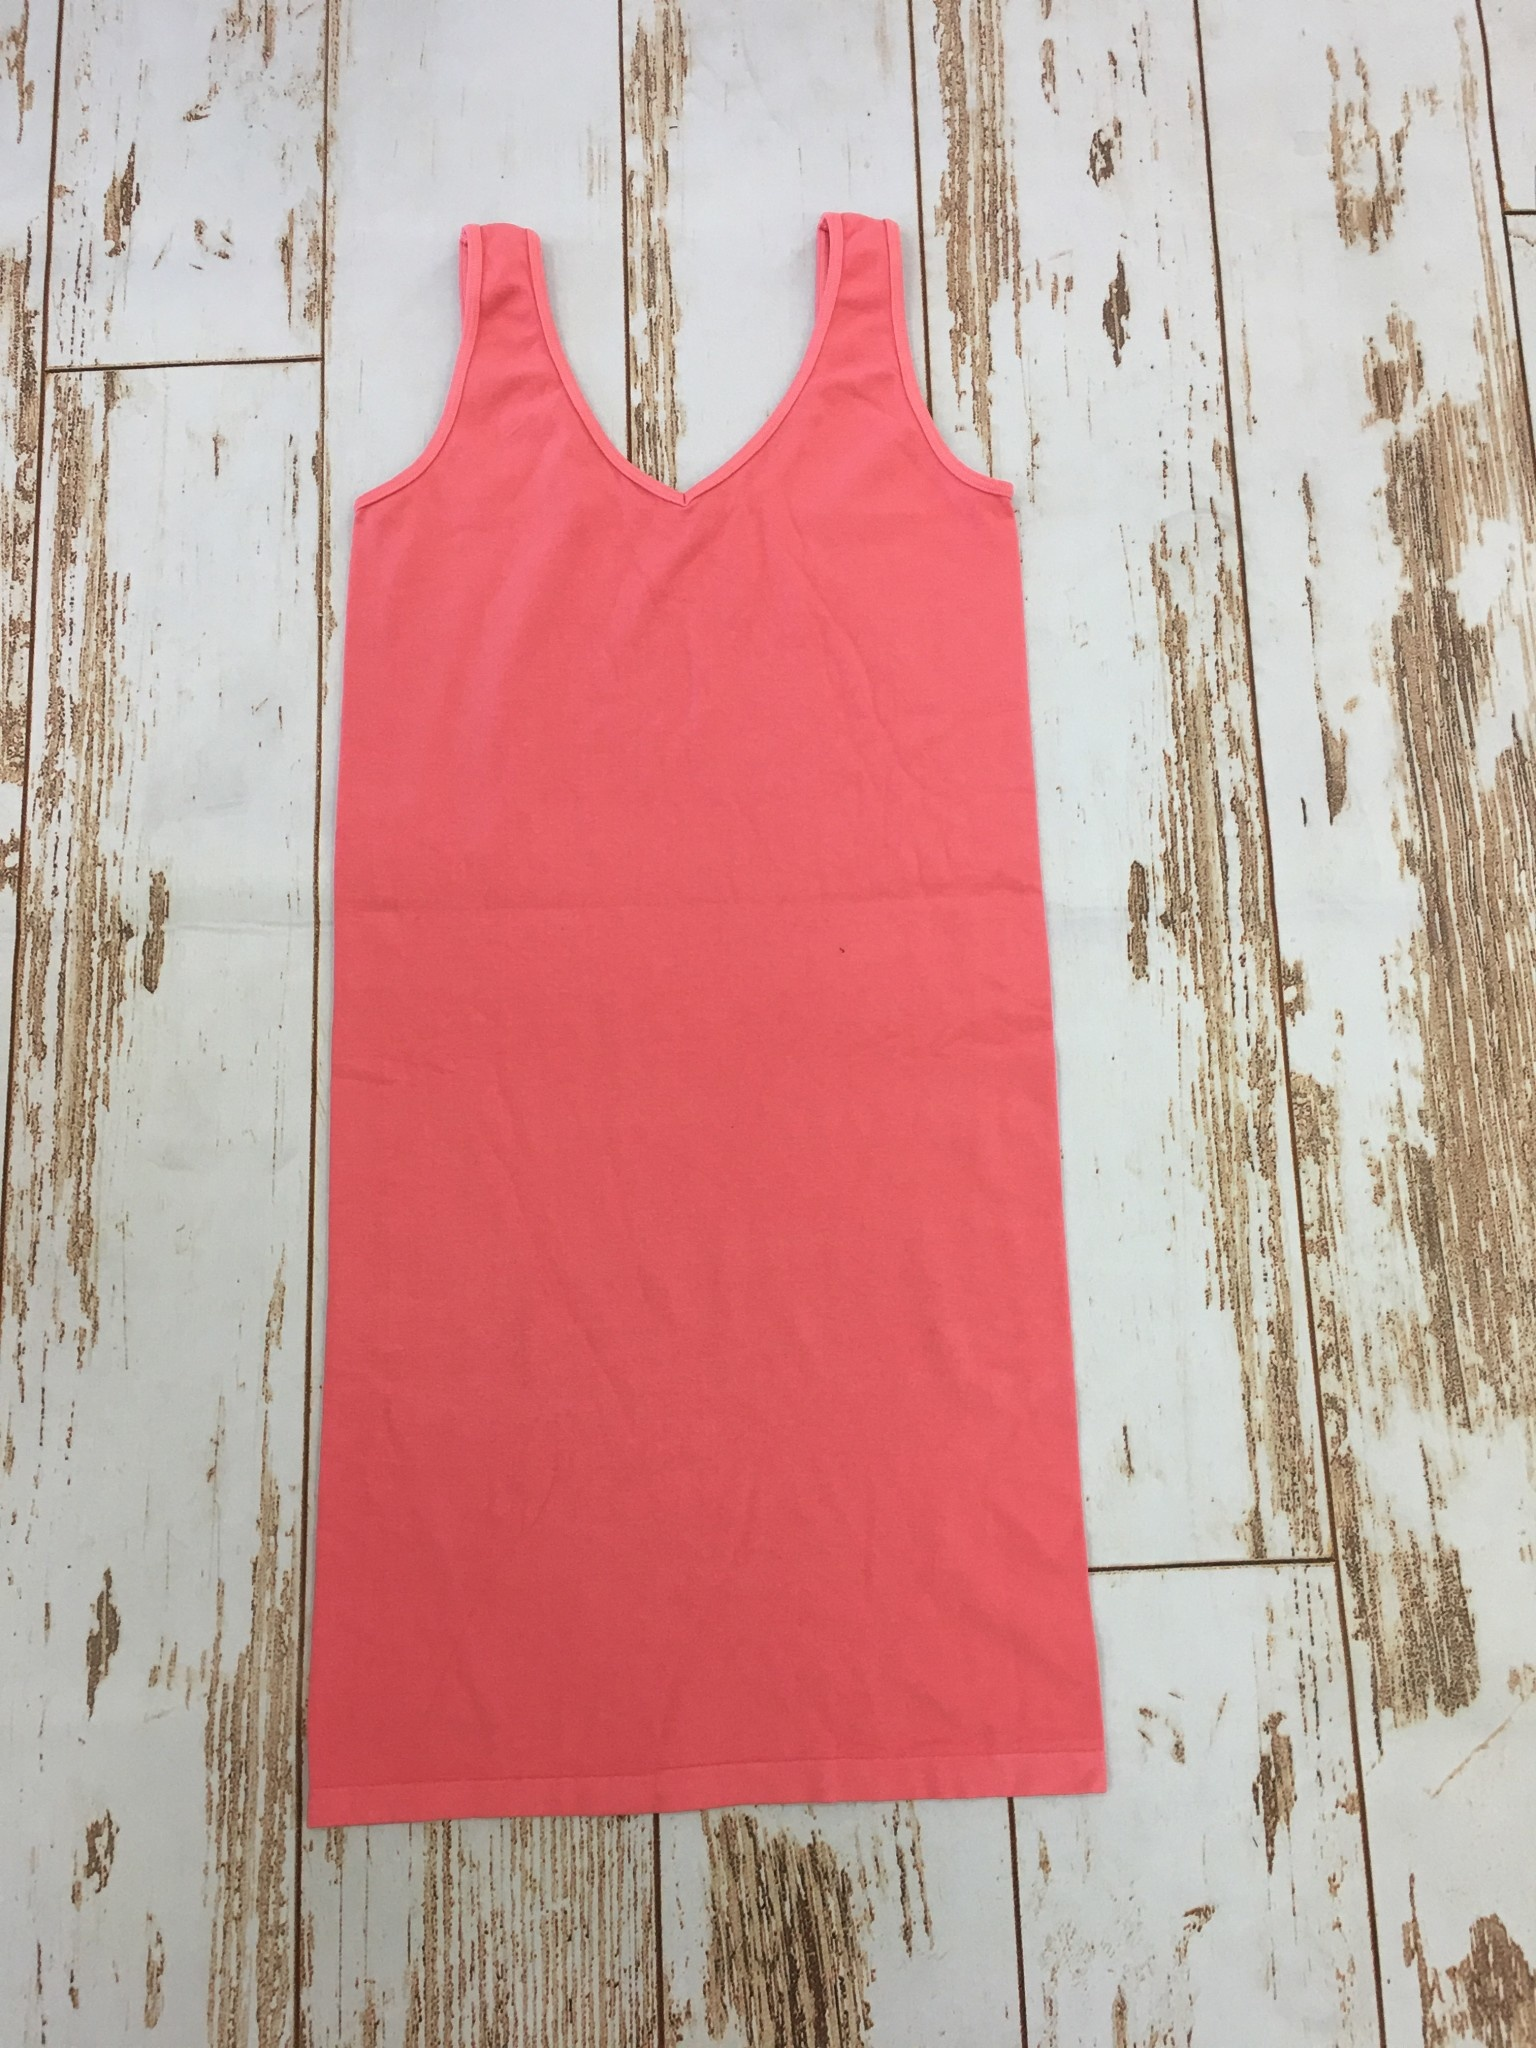 M Rena Tank Dress in Coral